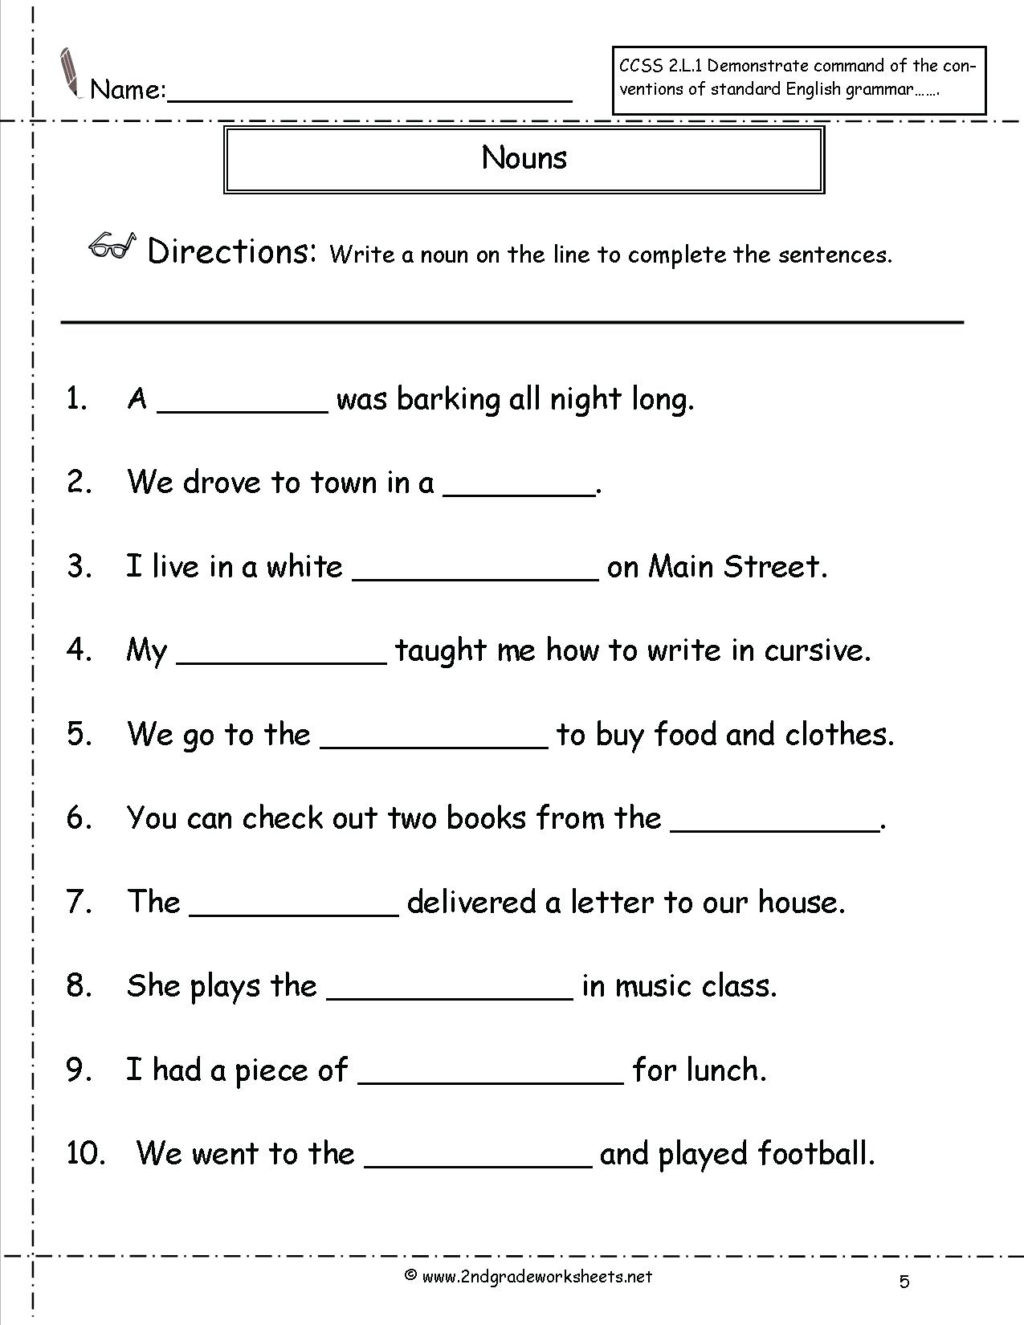 Proofreading Worksheets 3rd Grade Worksheet 2nd Grade Reading Prehension Worksheets Pdf